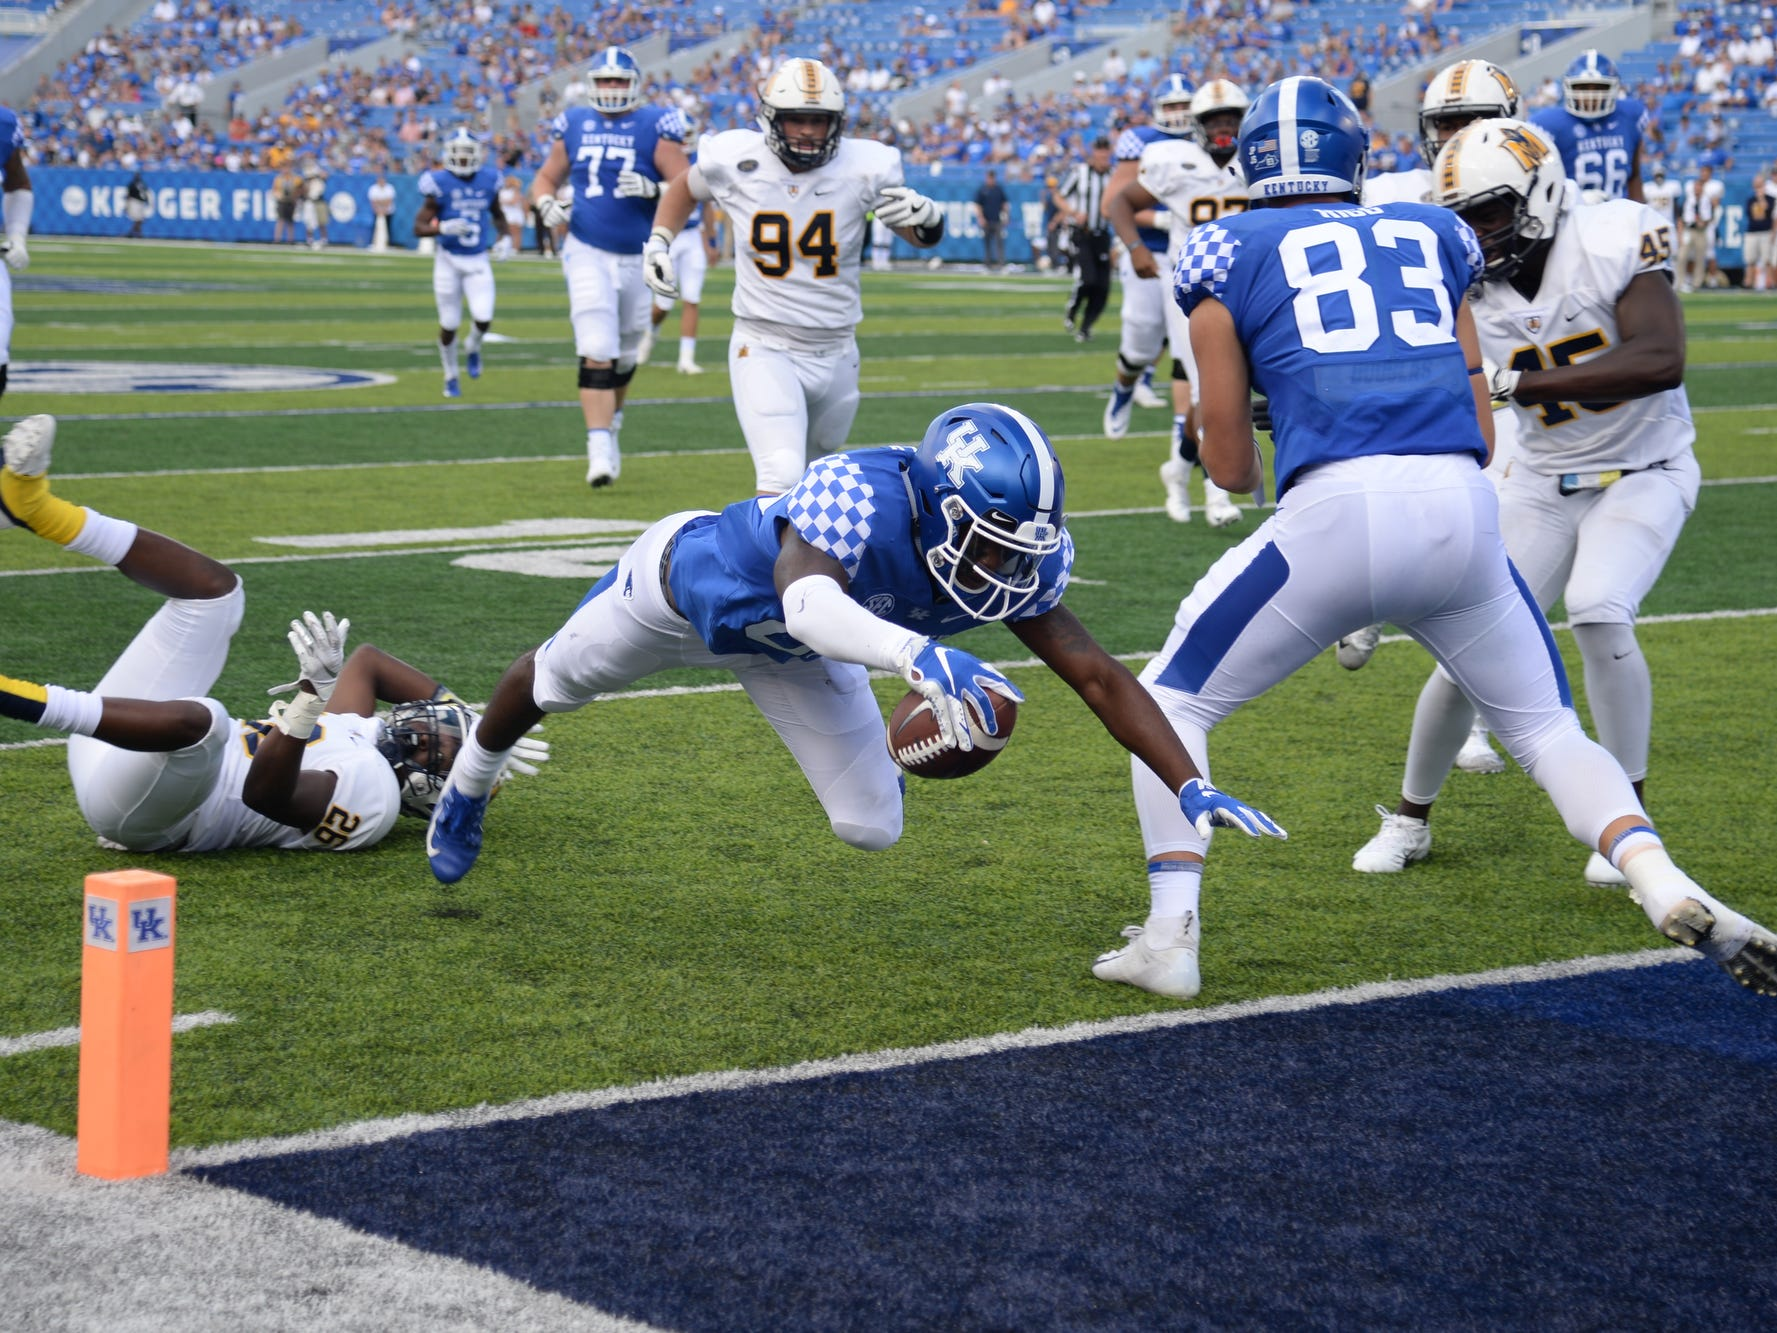 UK wide receiver Allen Dailey Jr. scores a touchdown during the University of Kentucky football game against Murray State at Kroger Field in Lexington, Kentucky, on Saturday, Sept. 15, 2018.